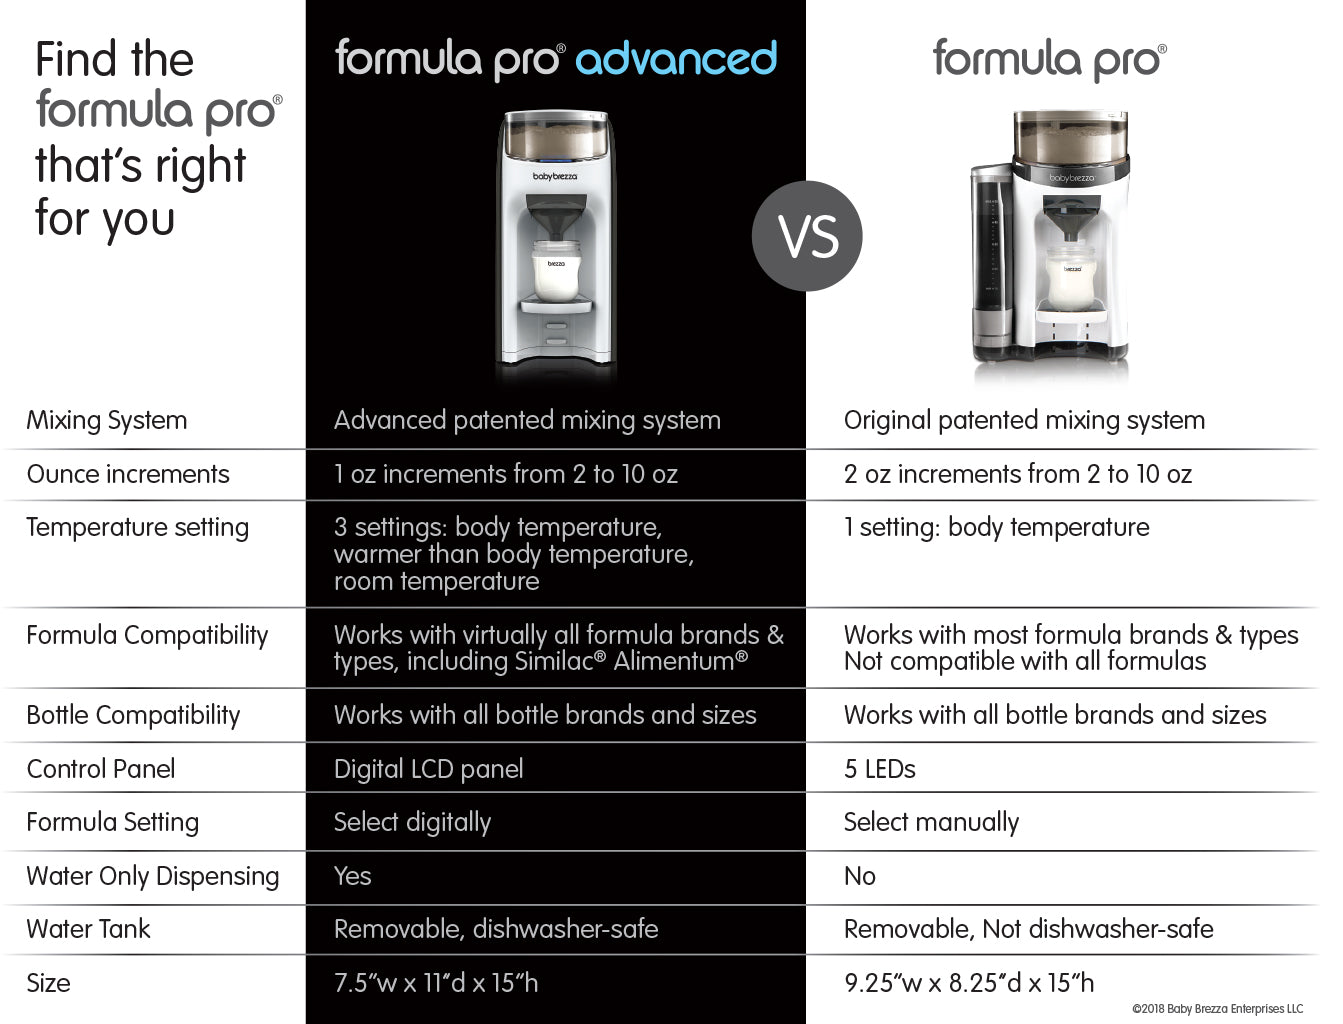 Formula Pro Vs Formula Pro Advanced Baby Brezza